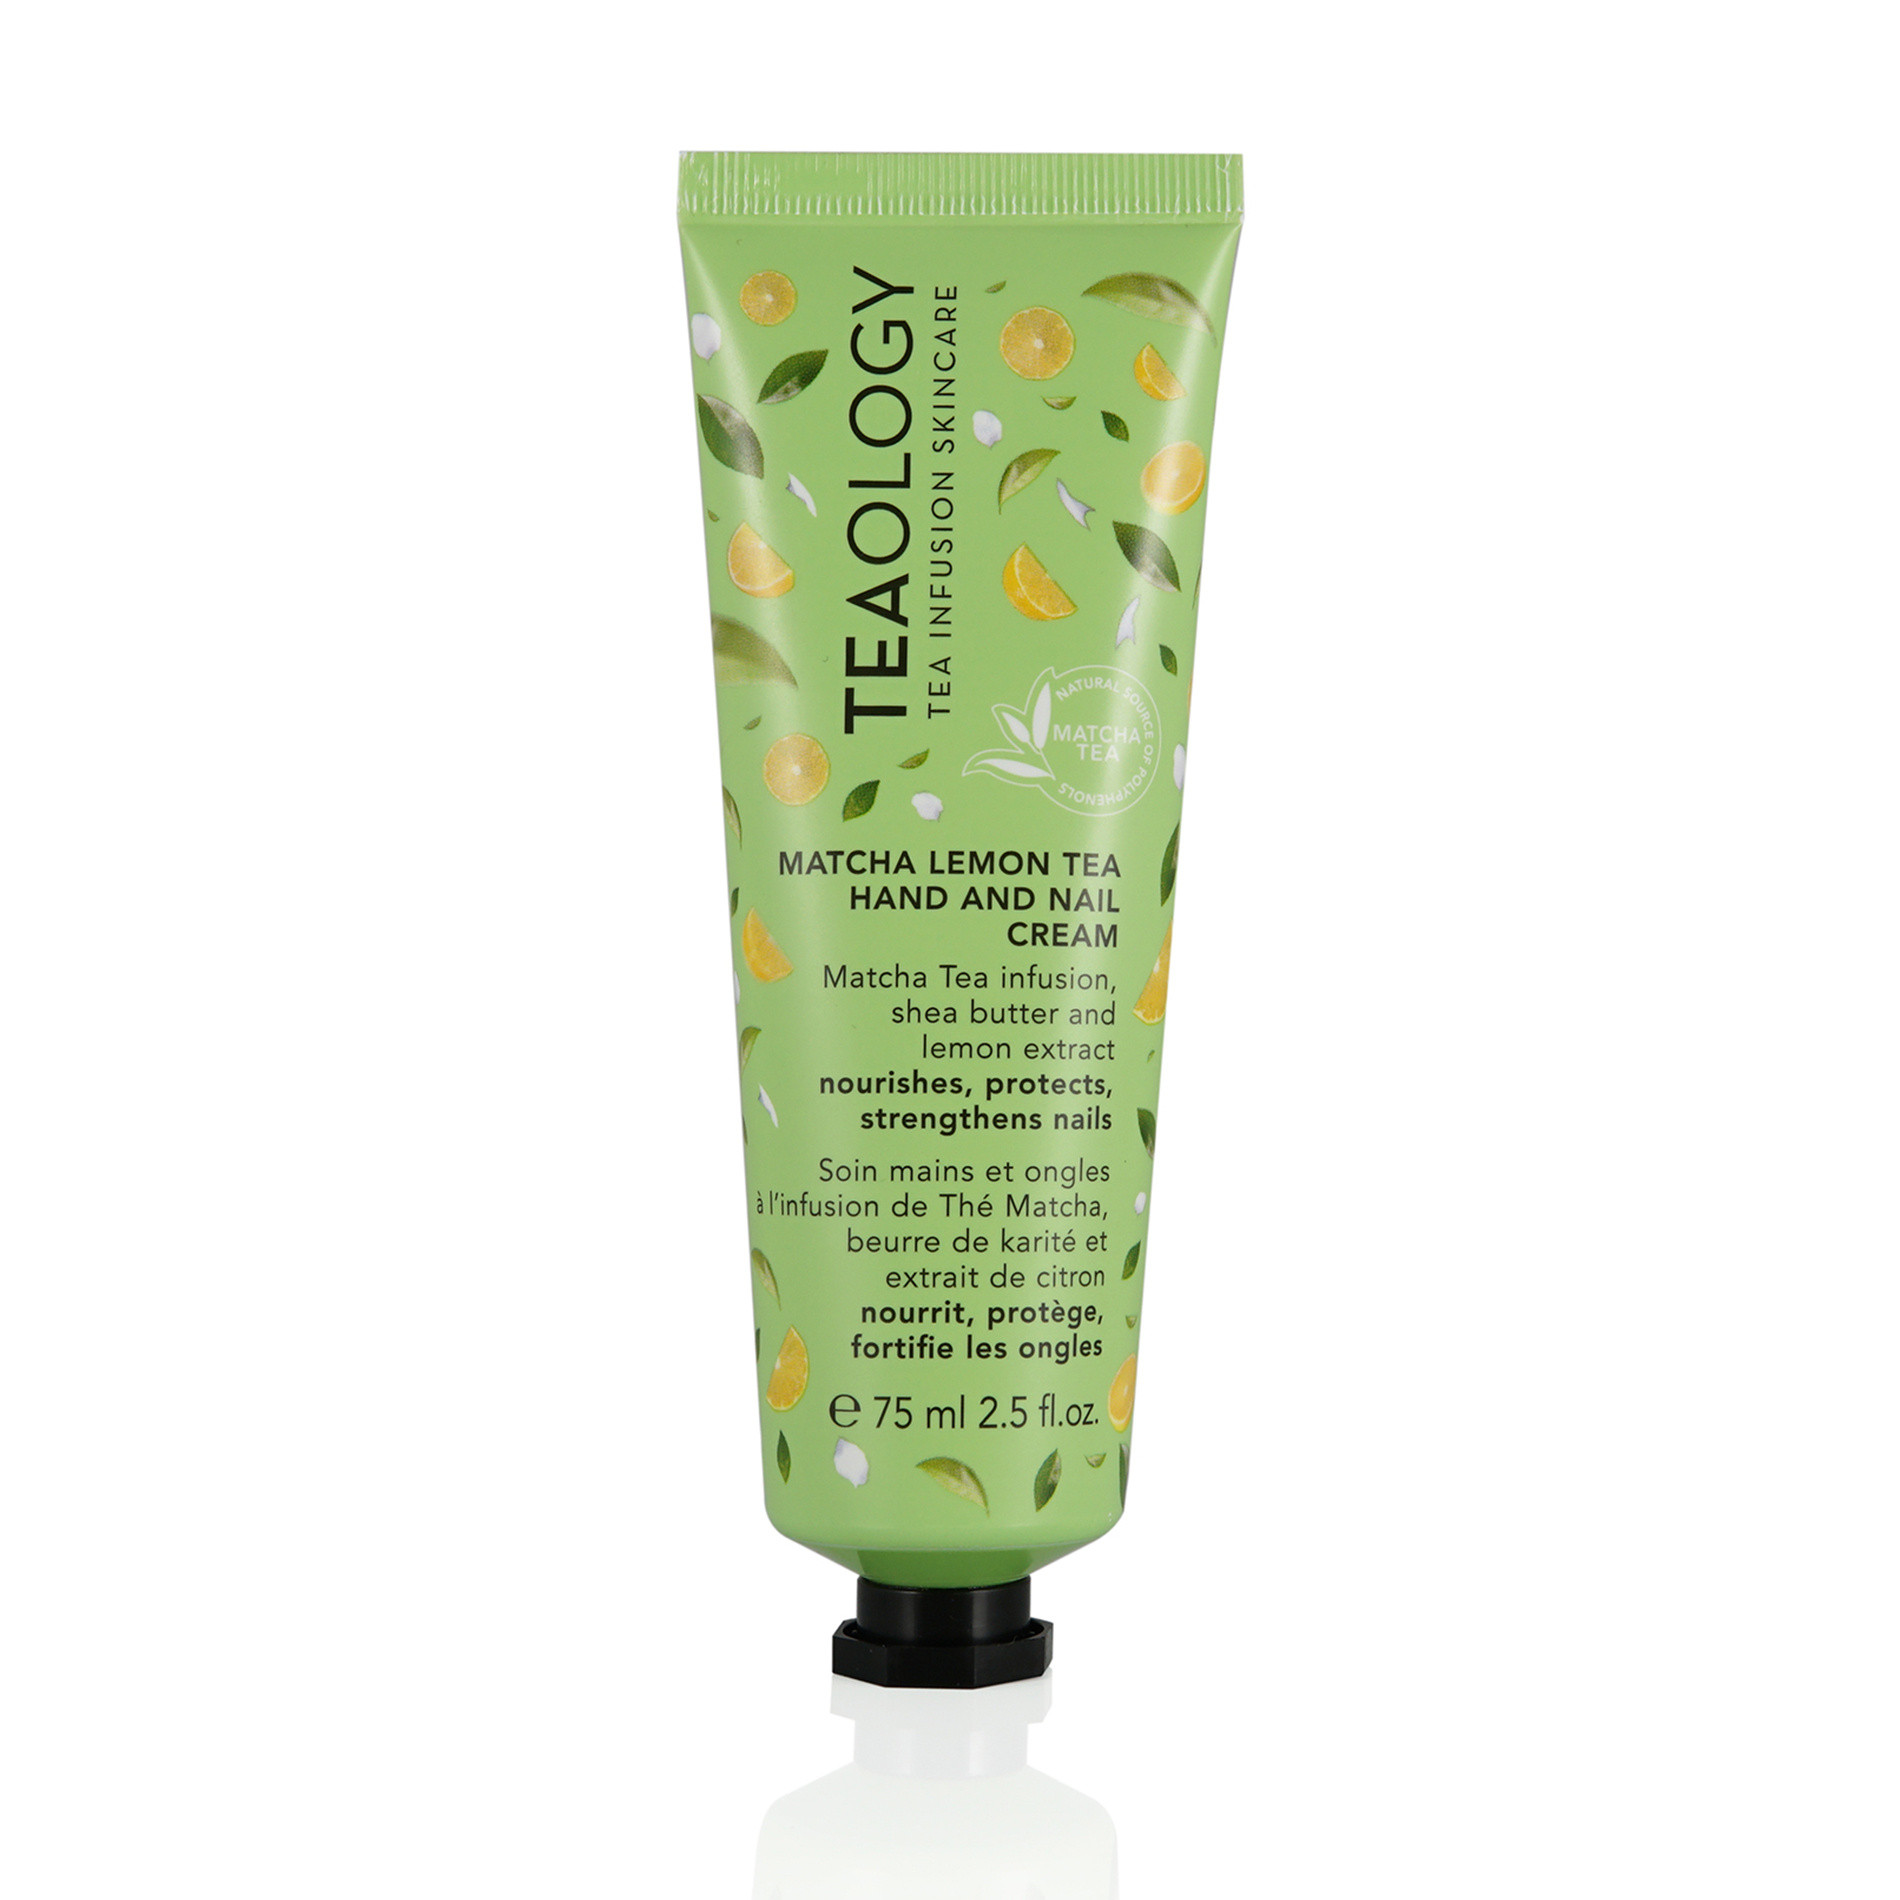 Matcha Tea Hand and Nail Cream 75 ml, Verde, large image number 0